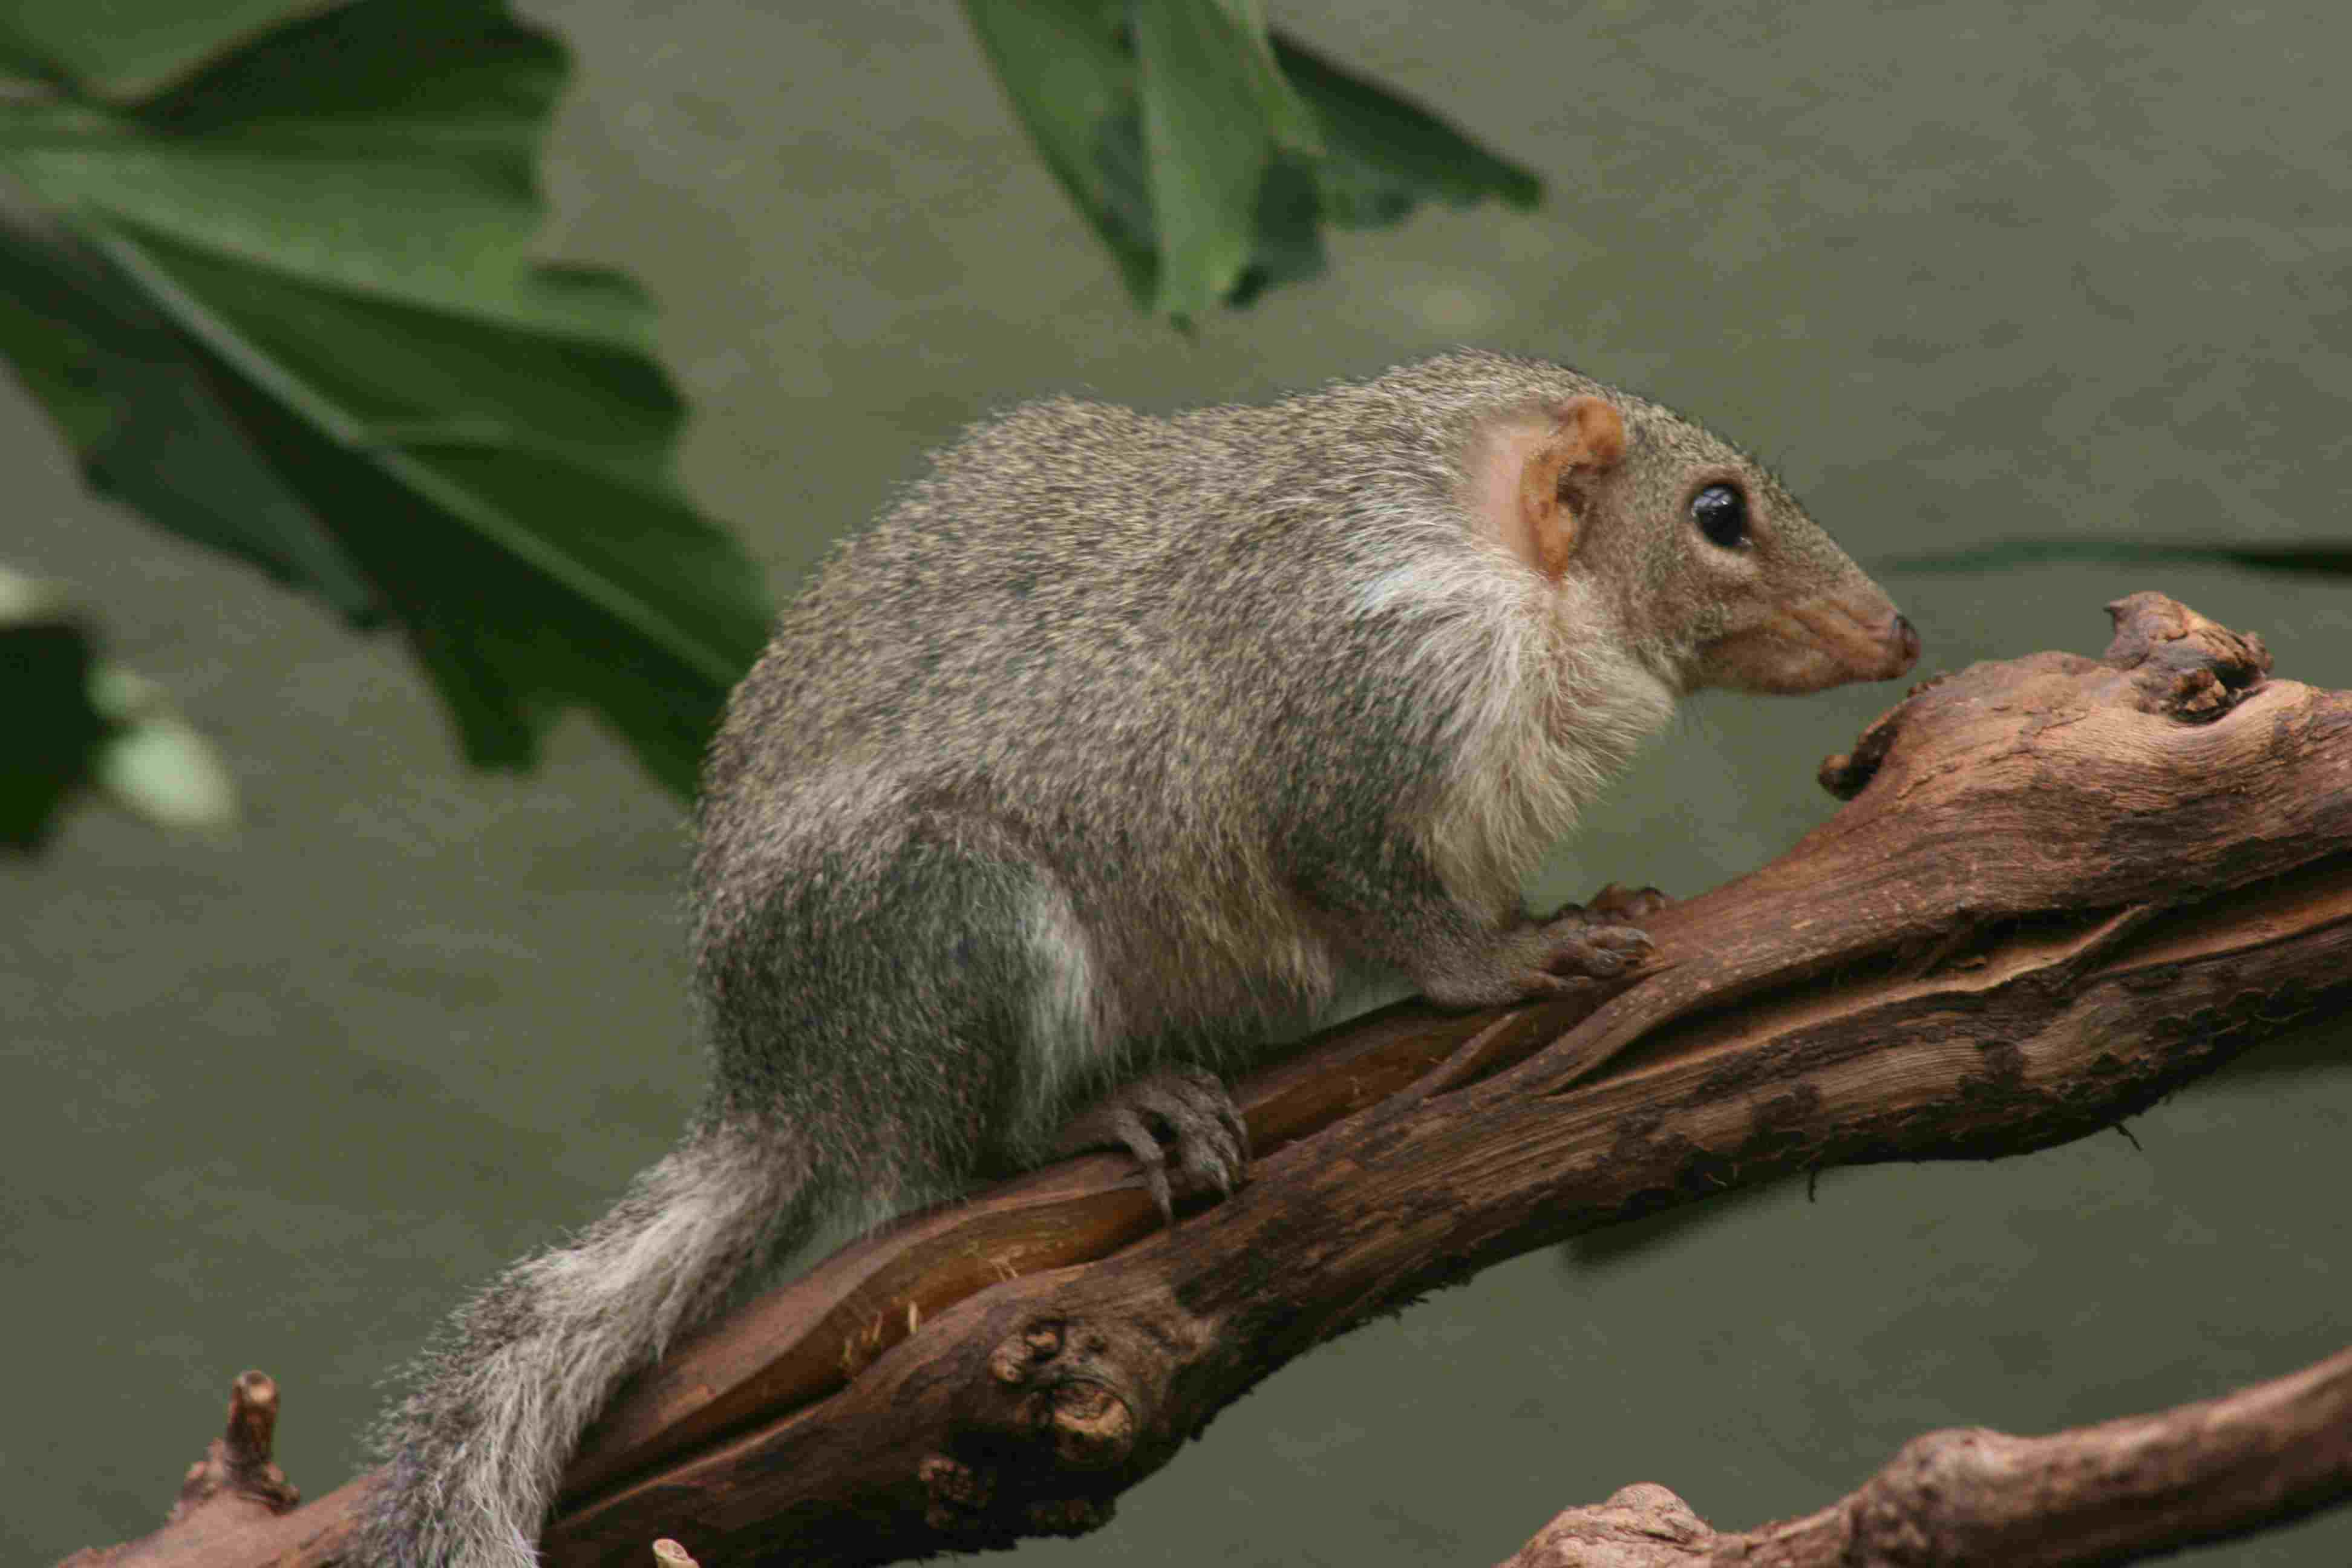 Tree shrew standing on a branch.